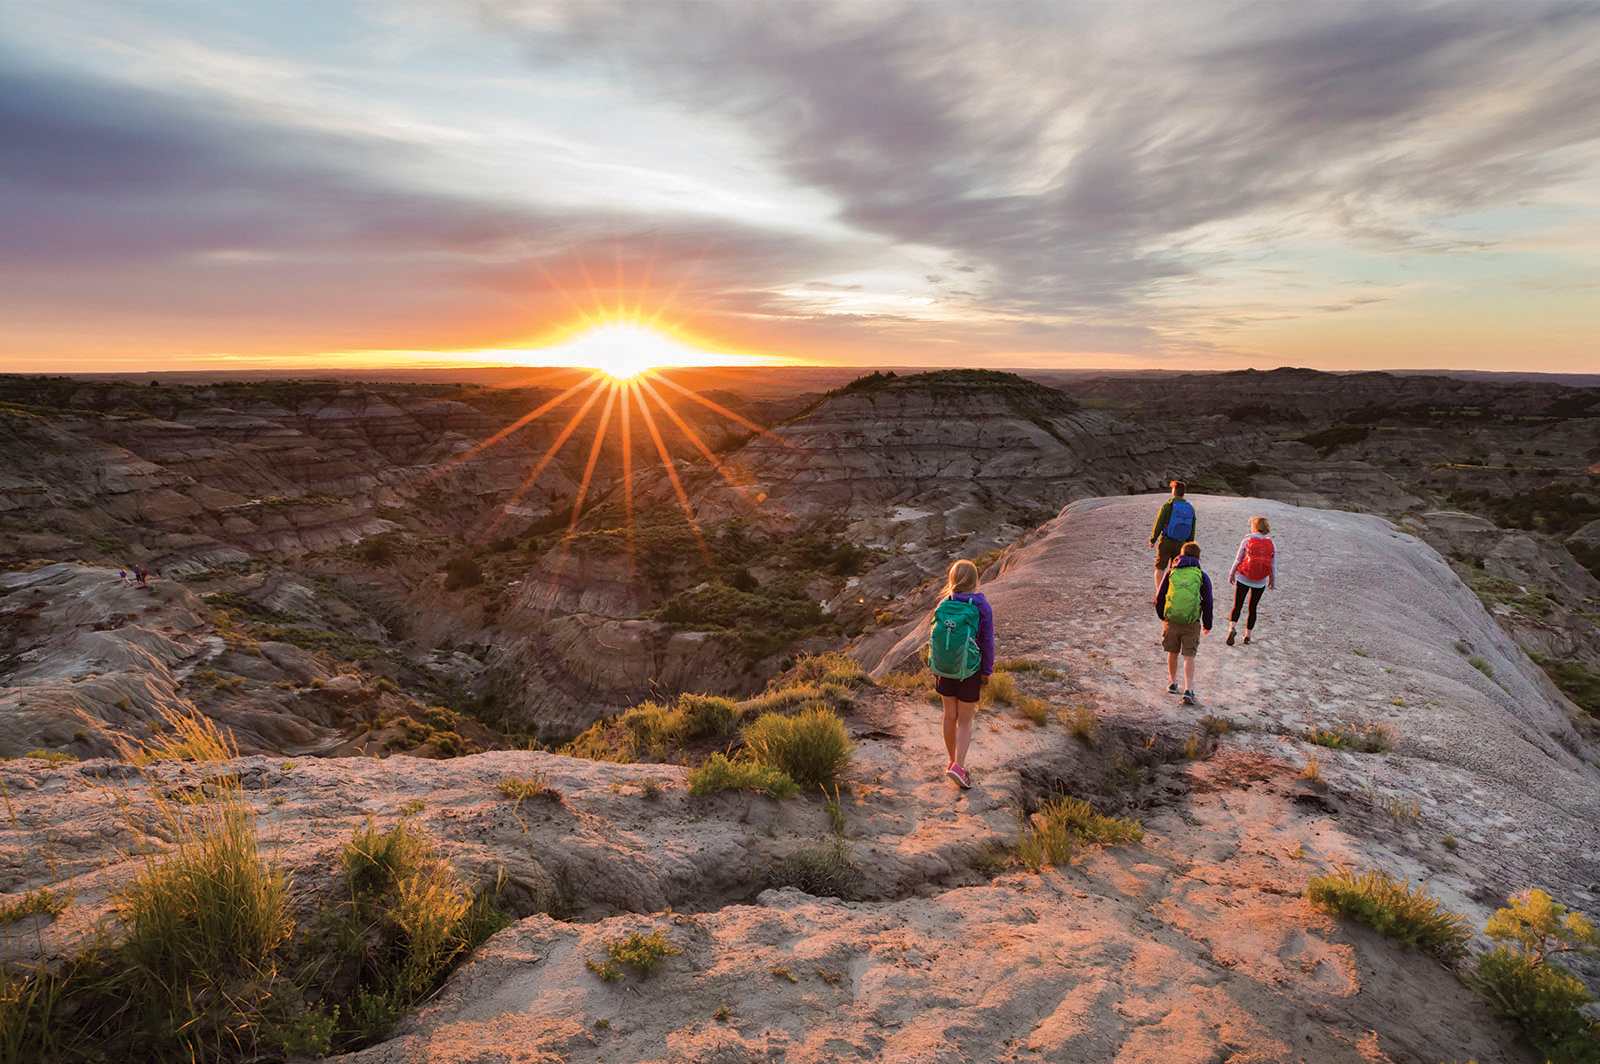 Find fossils and adventure in Montana's badlands. (Photo Courtesy: Visit Montana)